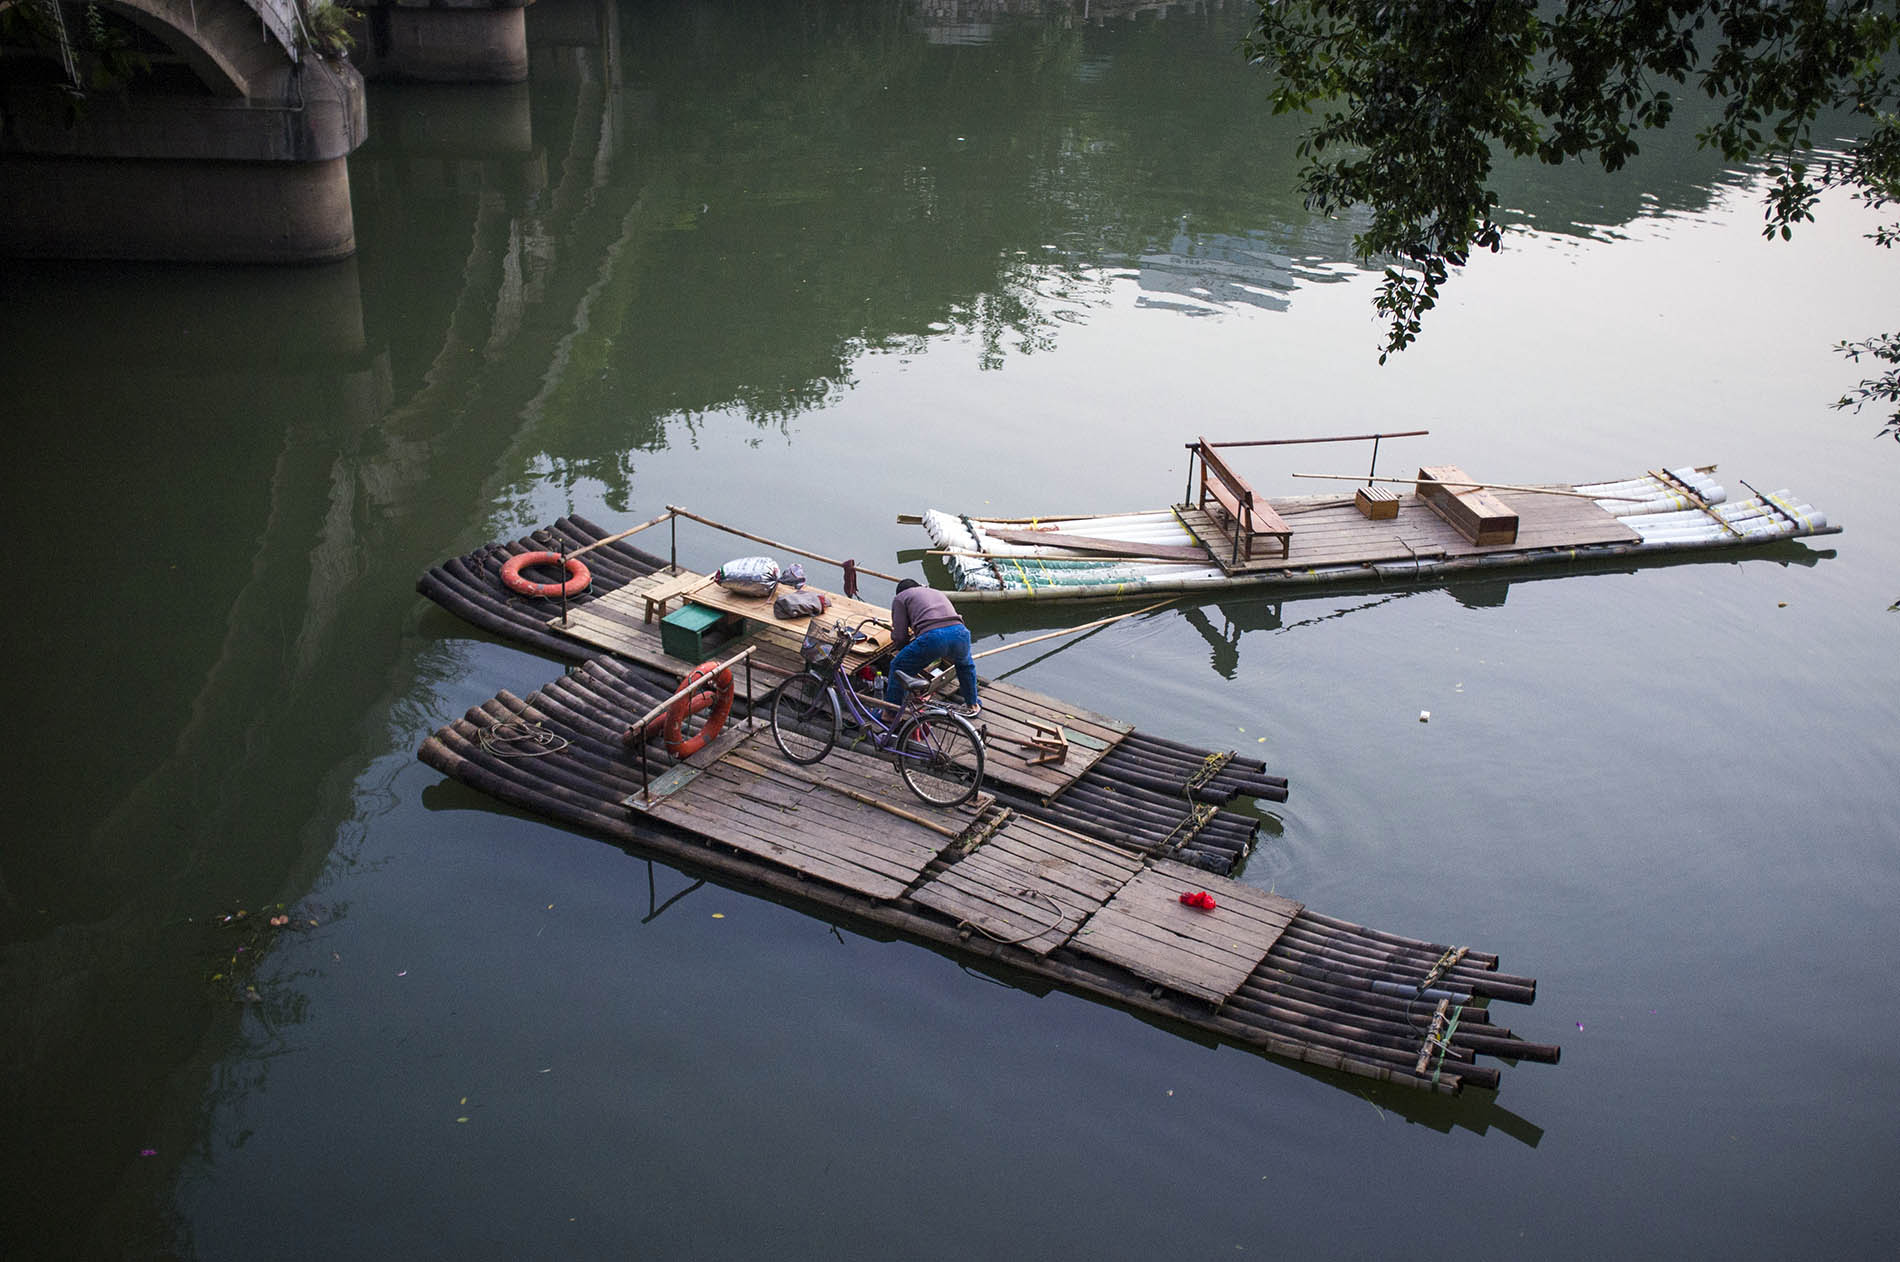 These bamboo rafts are shaped like a ski, the curvy edges allow them to glide effortlessly across the water.